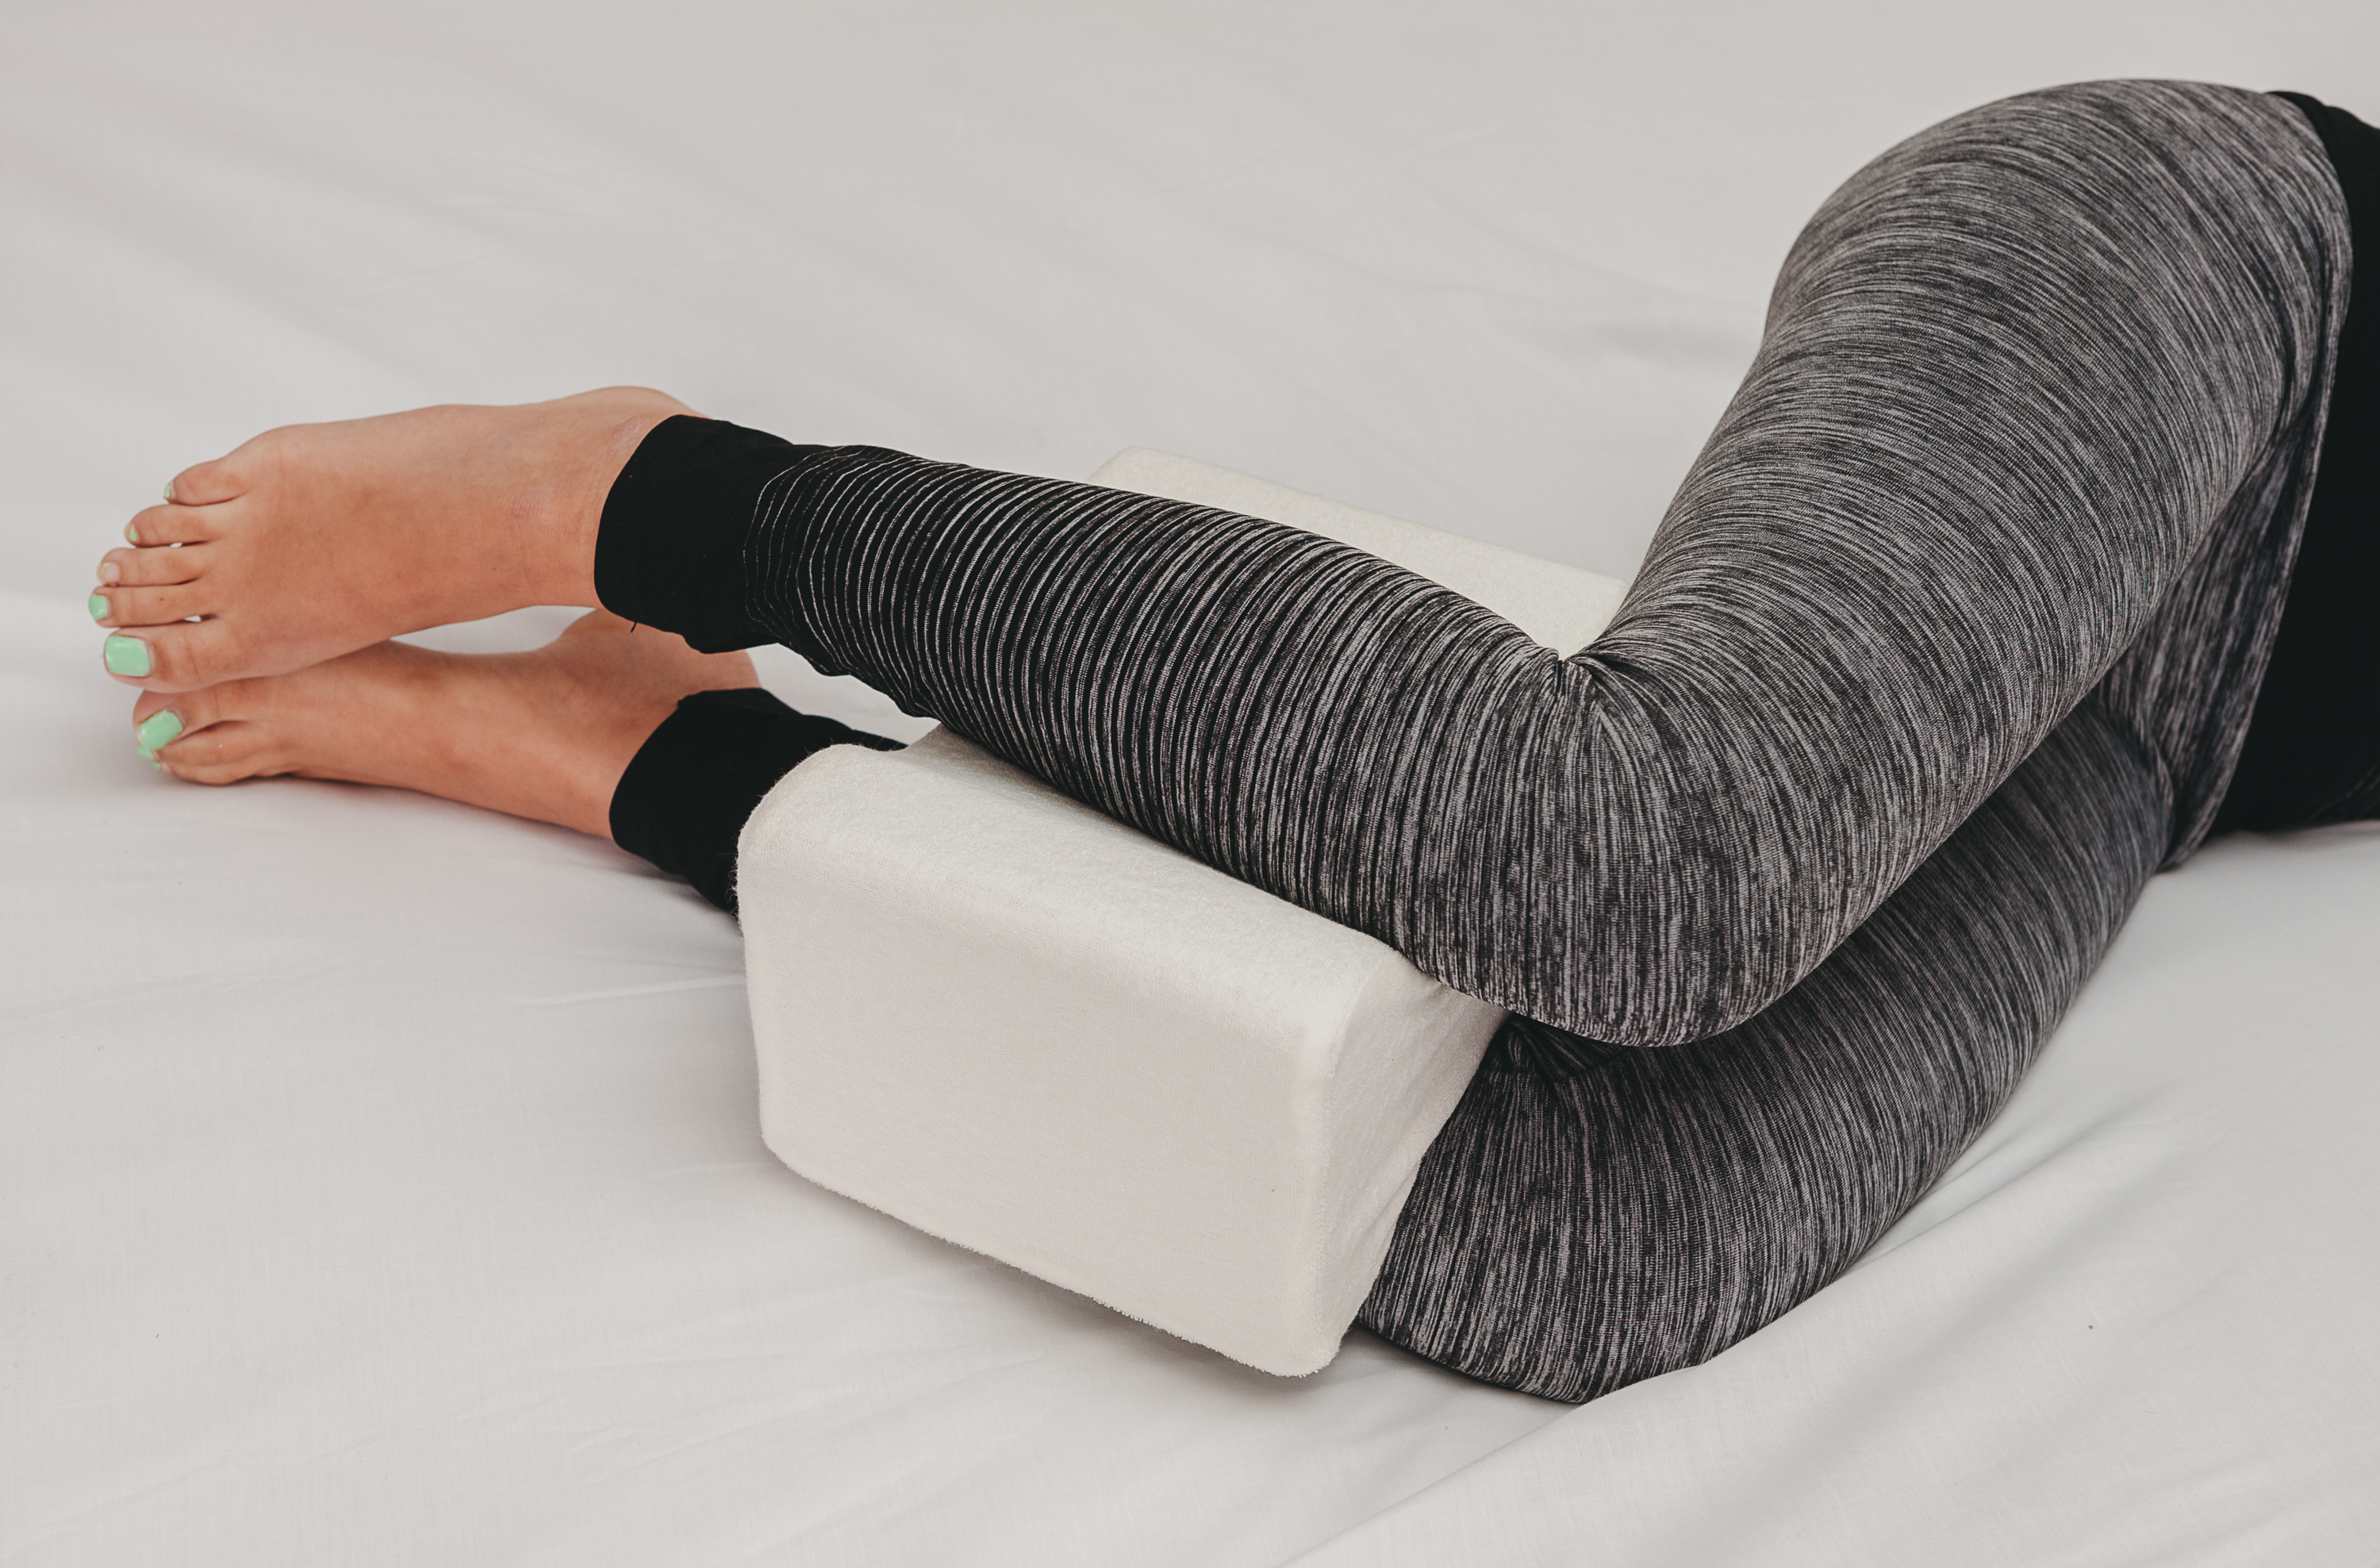 CONTOUR MEMORY FOAM LEG PILLOW ORTHOPAEDIC FIRM BACK HIPS